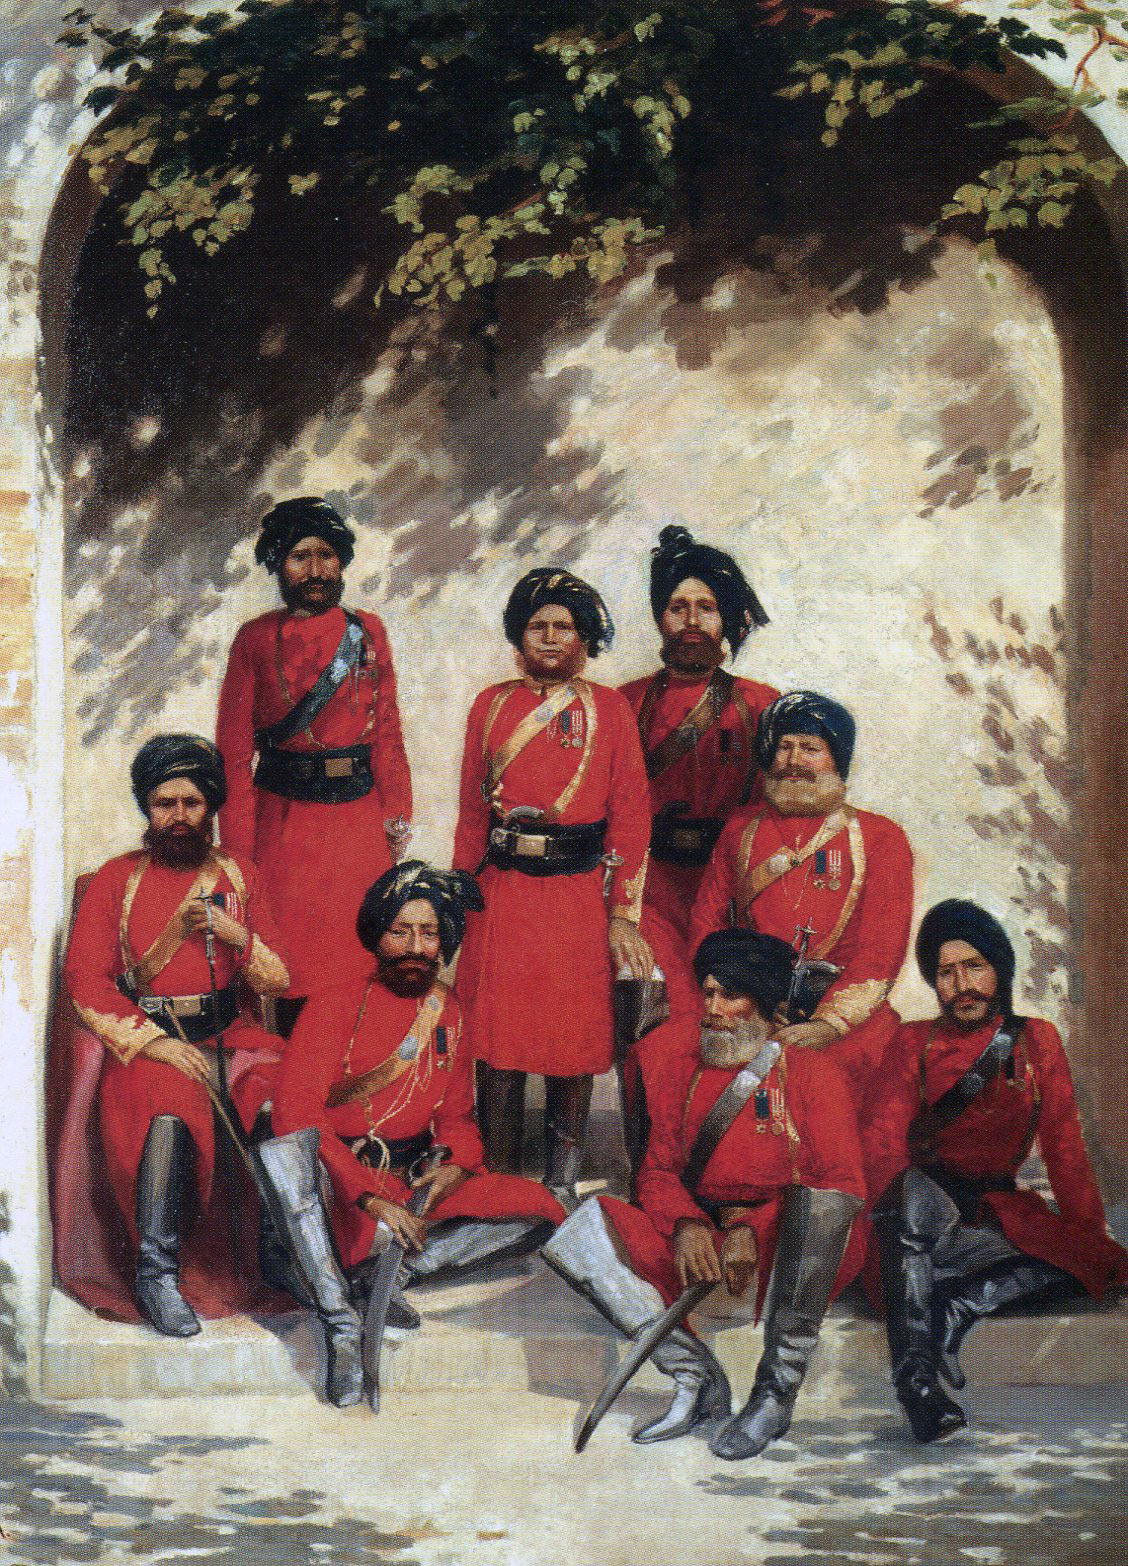 Indian Officers of the 2nd Punjab Cavalry: Battle of Ahmed Khel on 19th April 1880 in the Second Afghan War: picture by Gordon Hayward